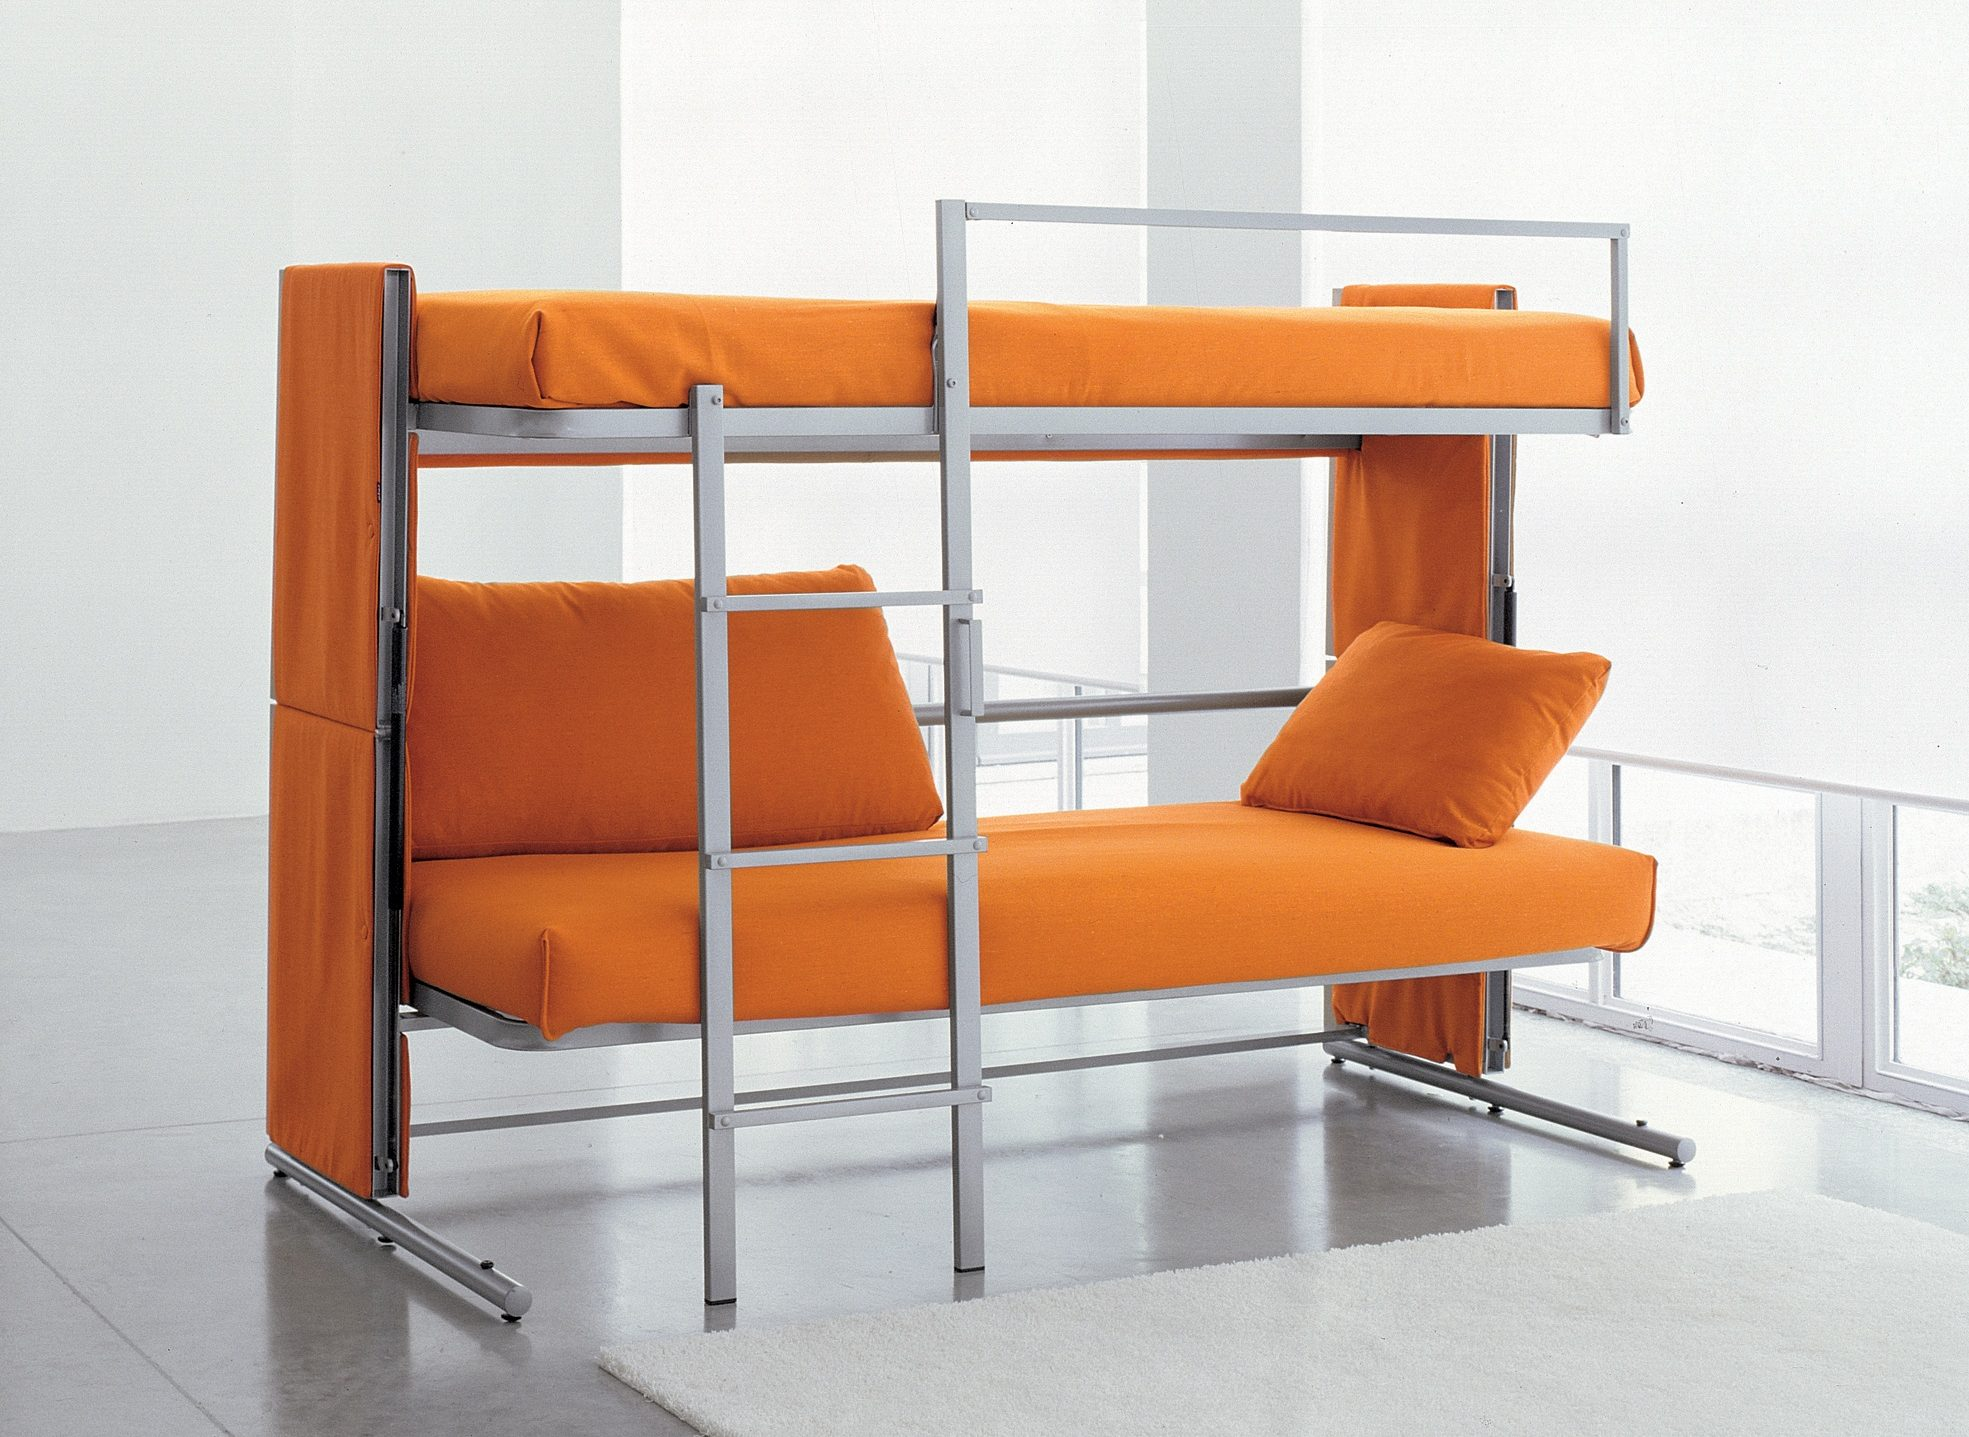 Enjoyable Bed Bunk Bed With One Bed On Top Ocoug Best Dining Table And Chair Ideas Images Ocougorg